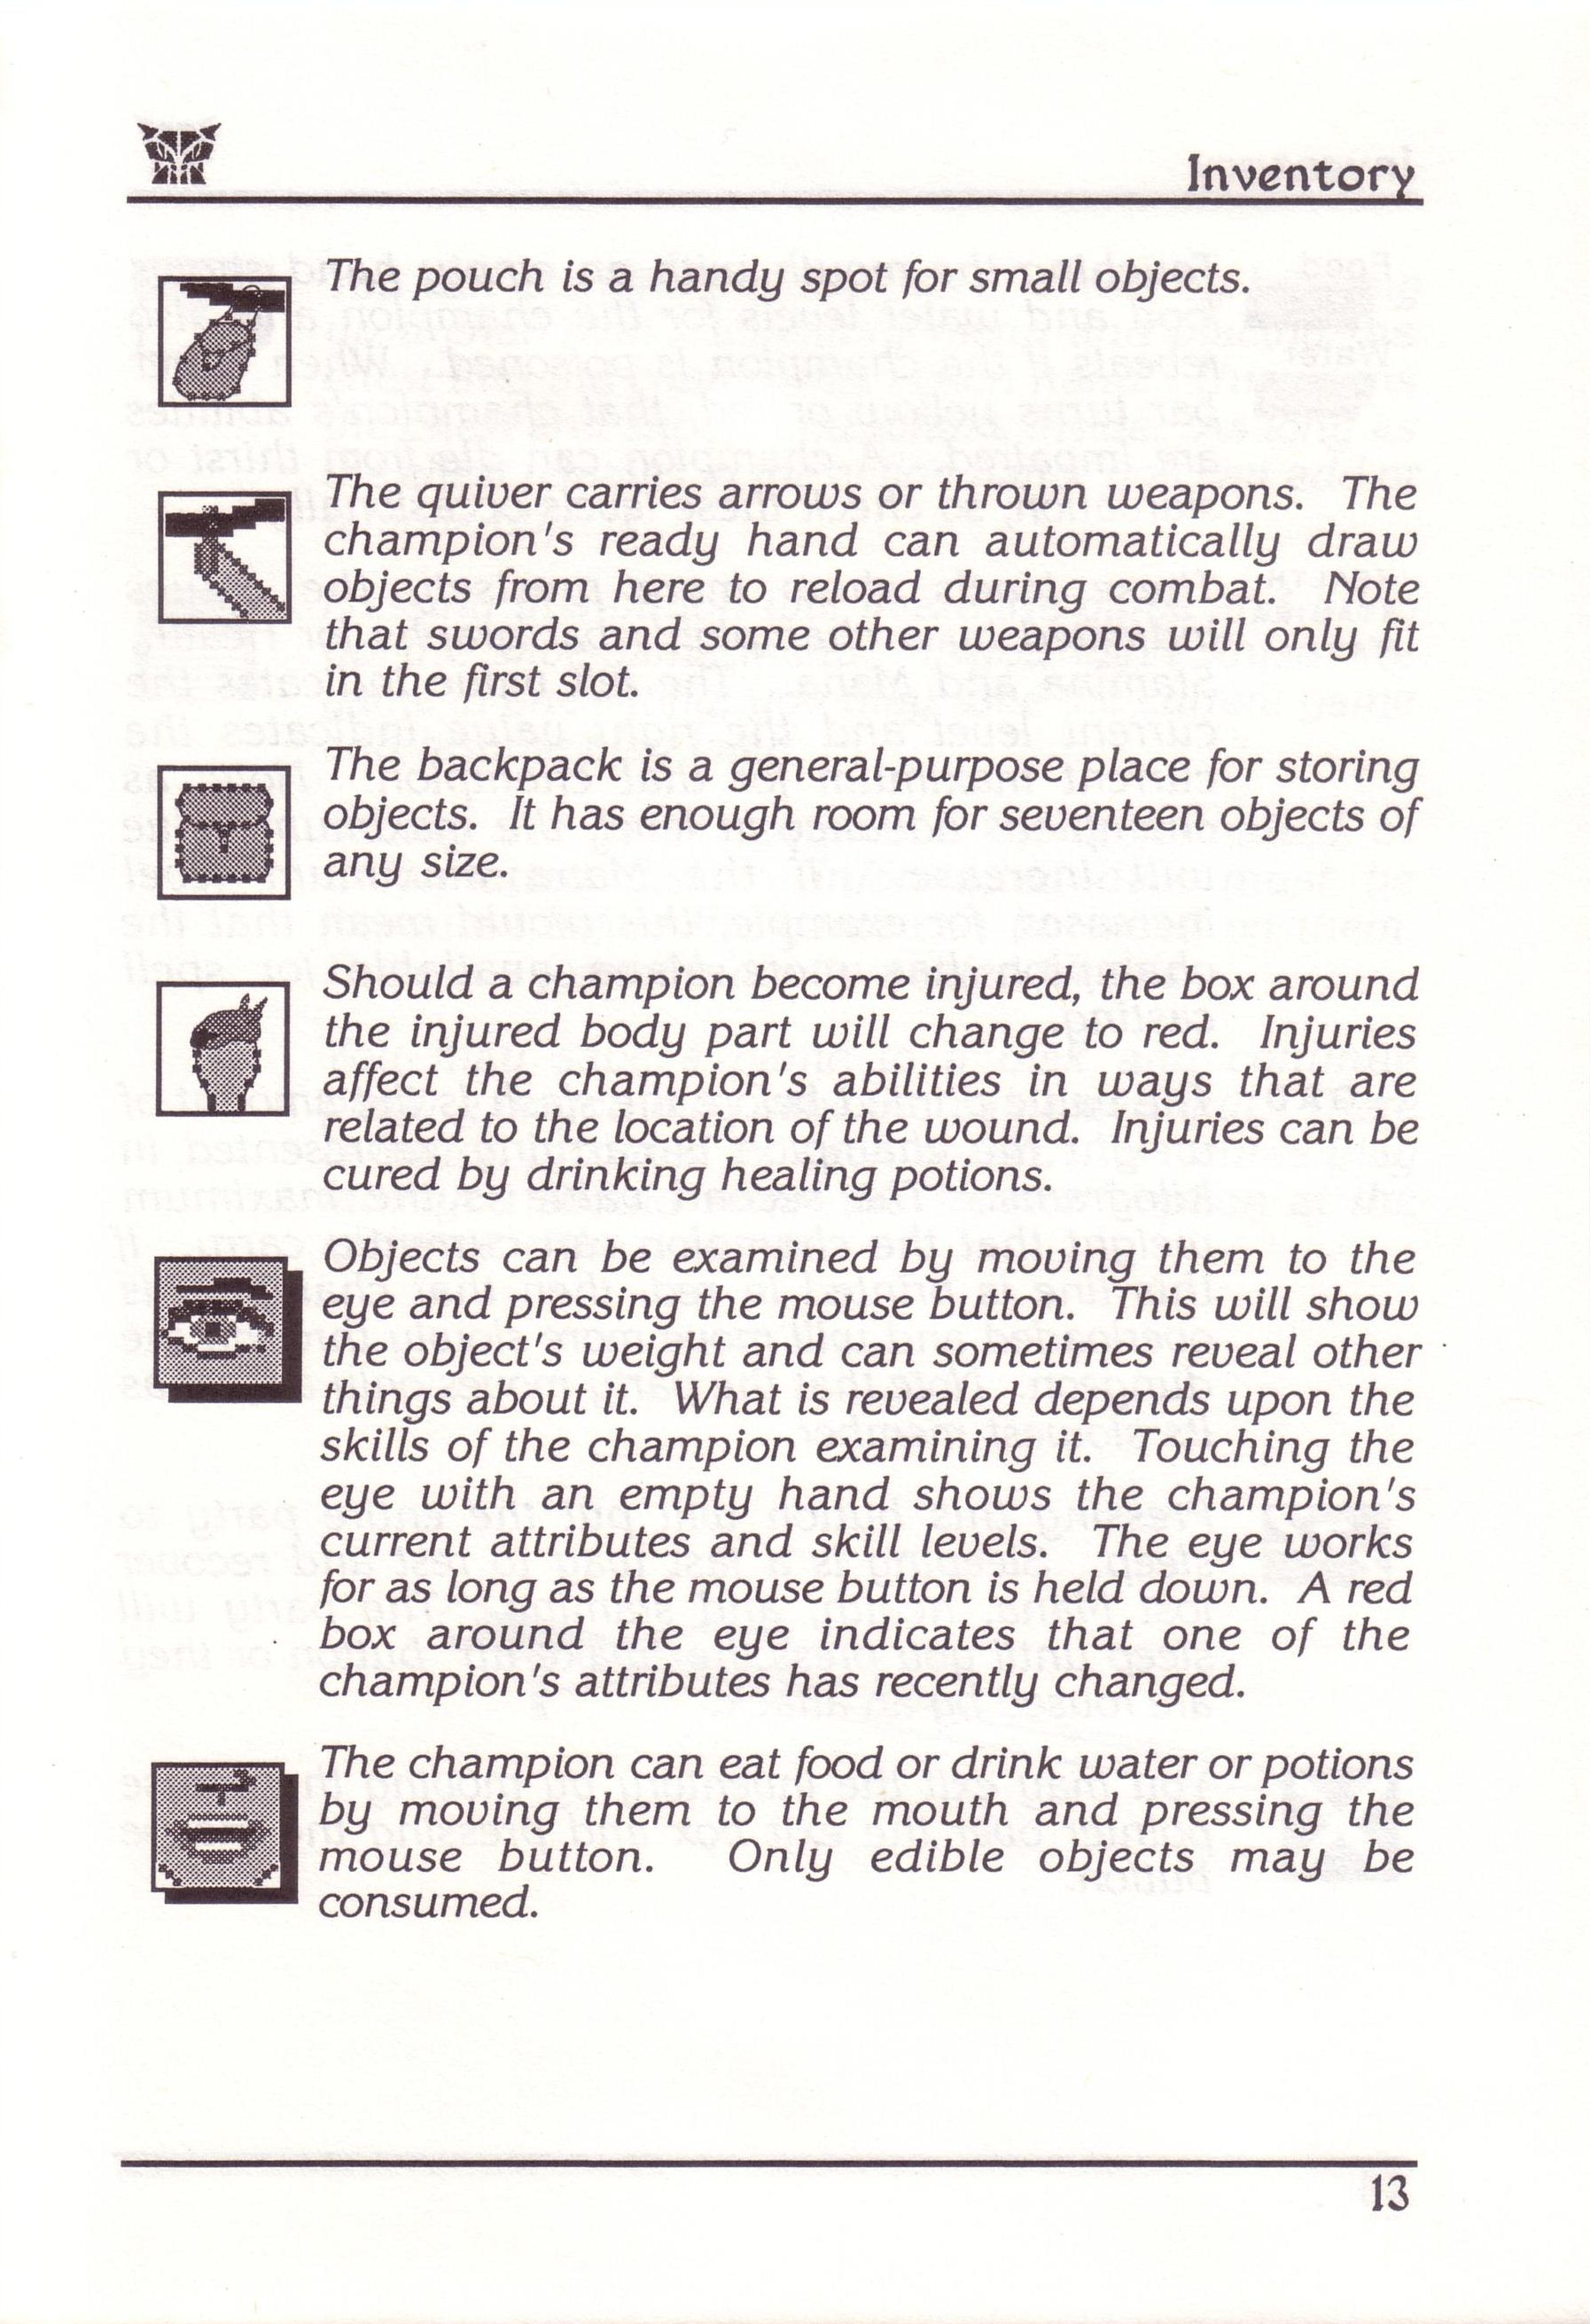 Dungeon Master for PC with FTL Sound Adapter (US Release) - Manual Page 37